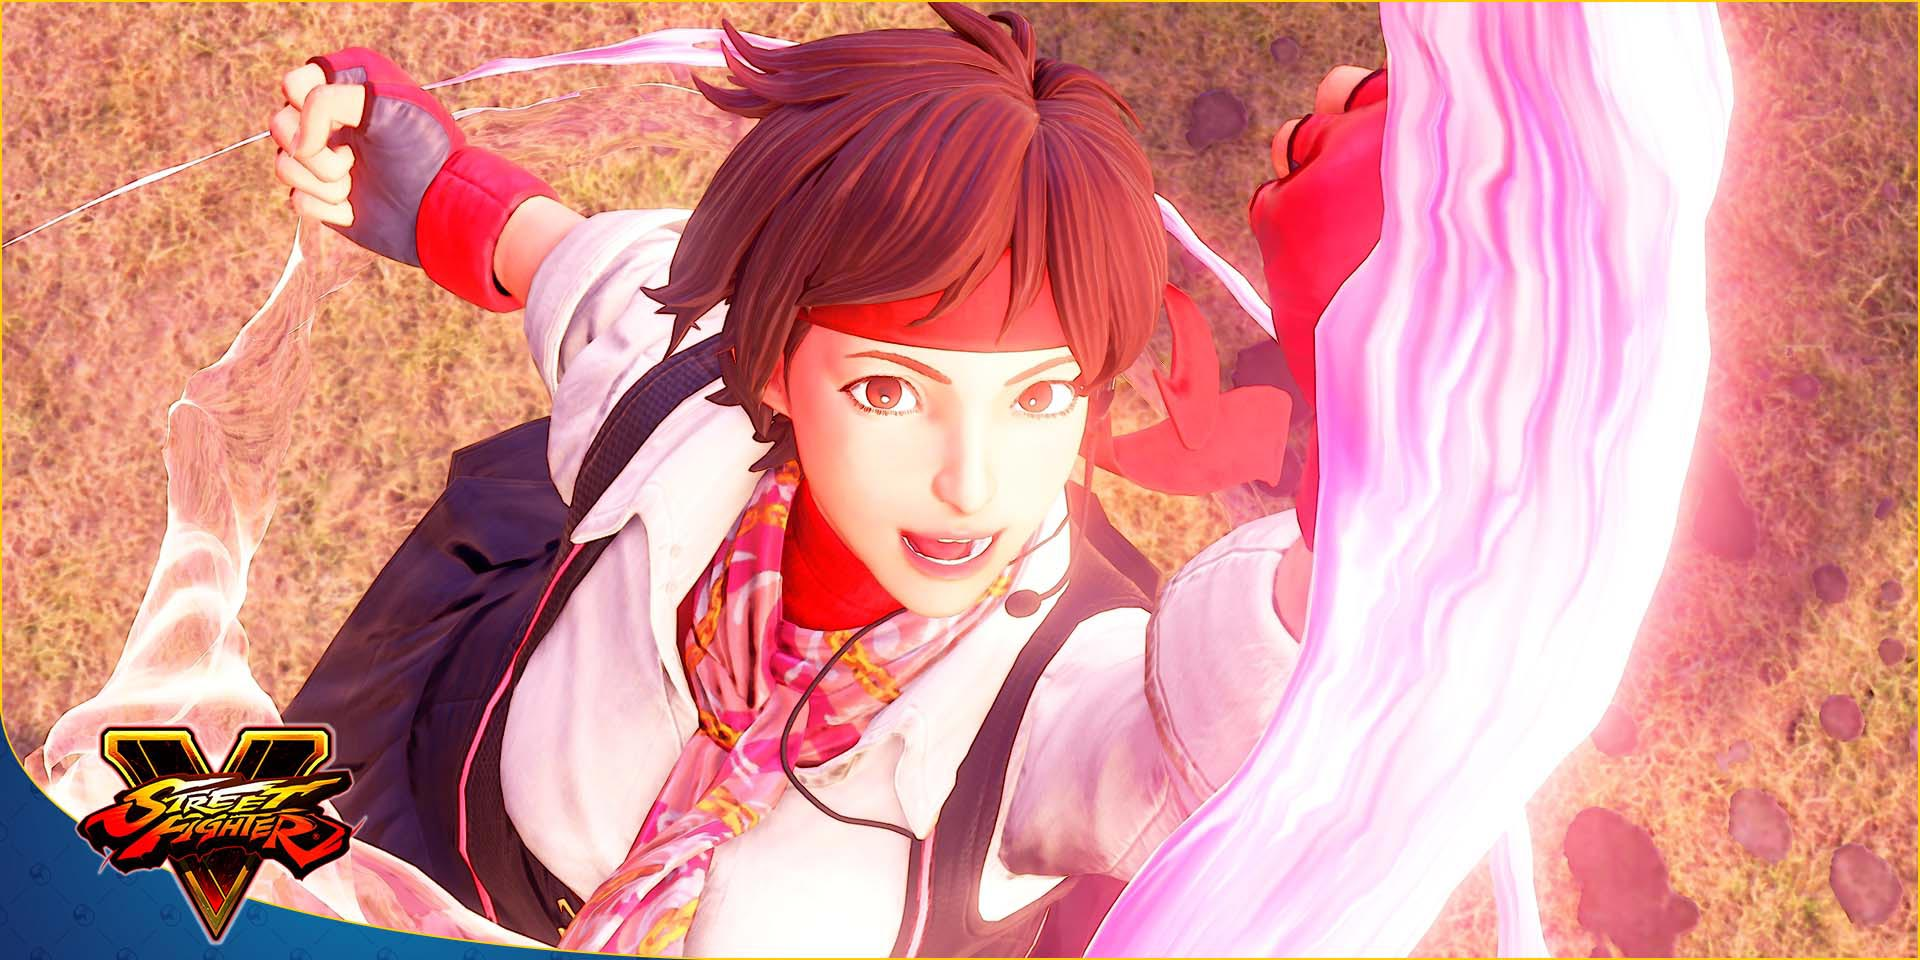 Sakura in Street Fighter 5 1 out of 7 image gallery